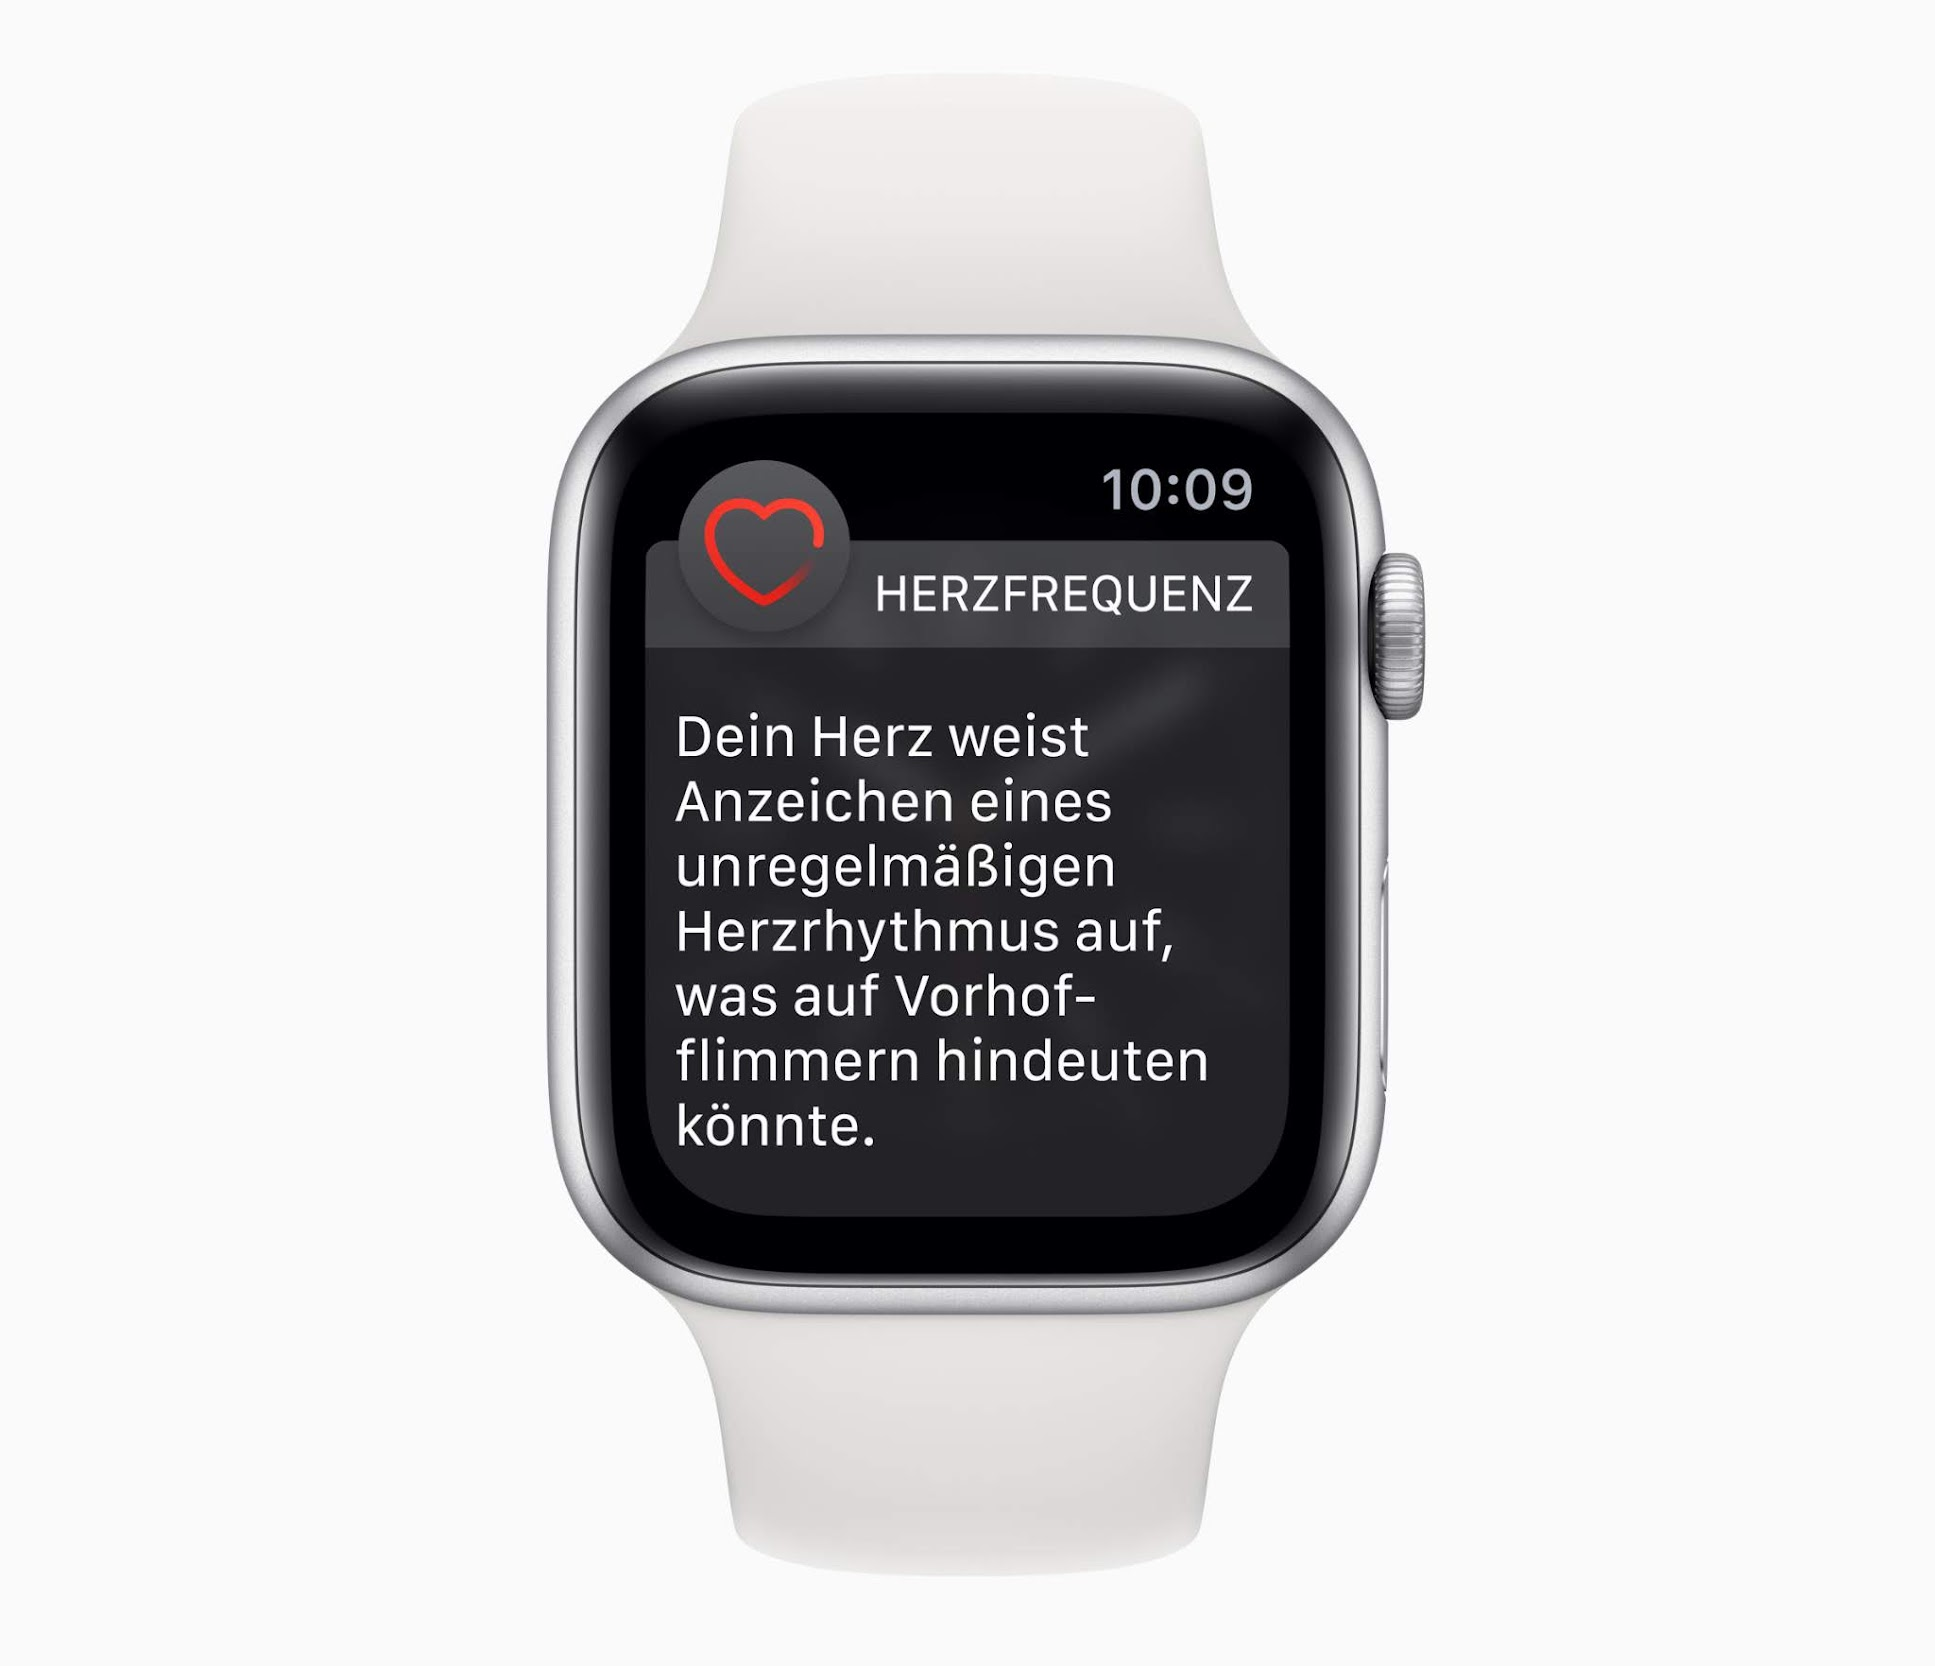 Warnhinweis der Apple Watch